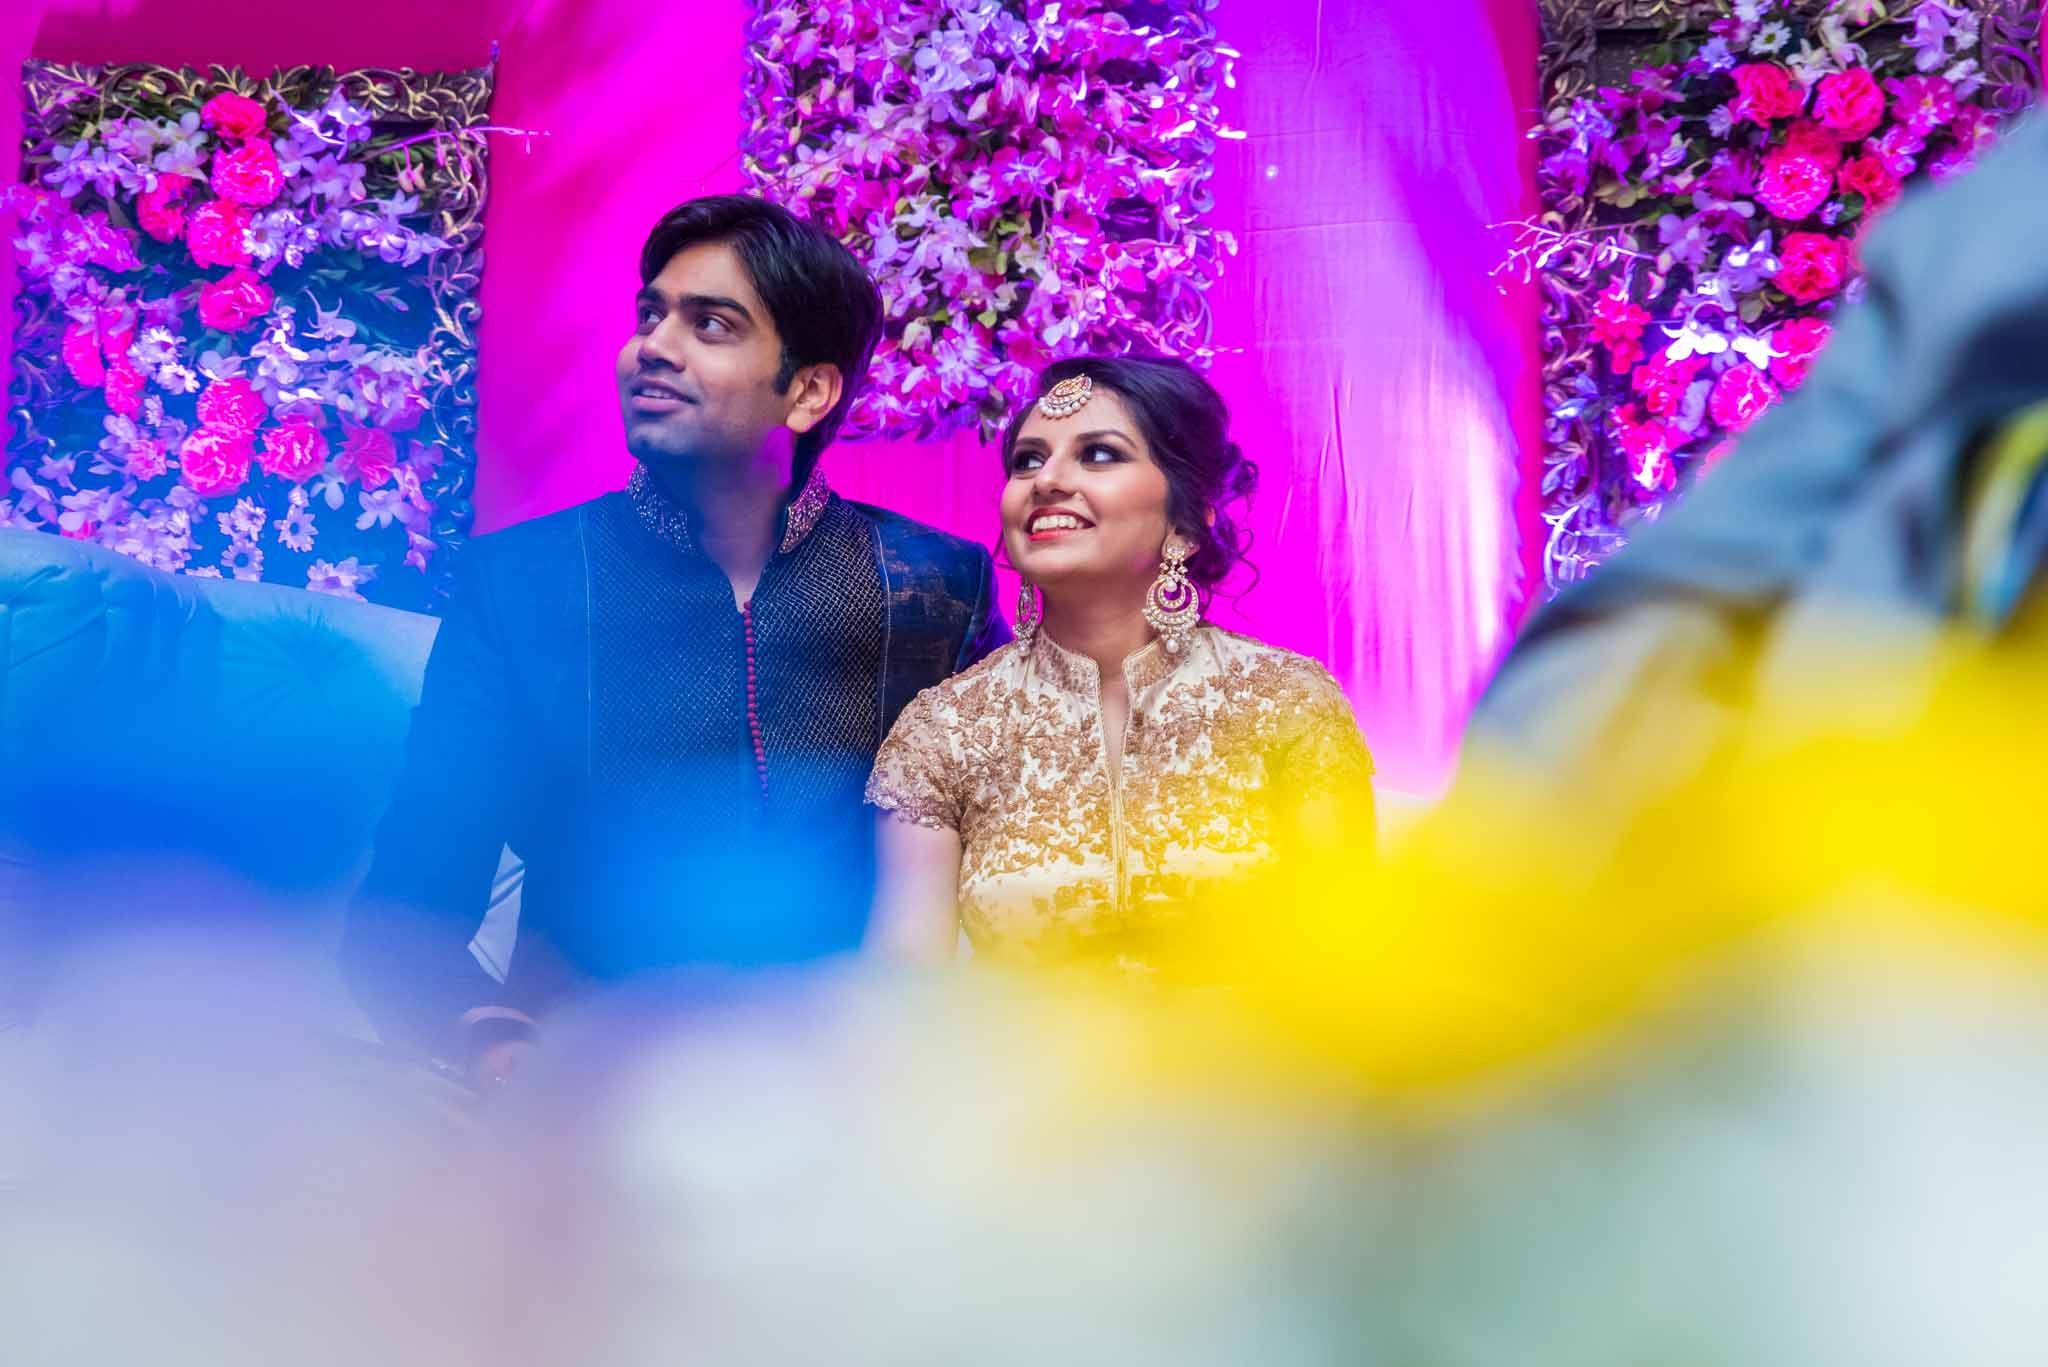 Candid-Wedding-Photography-Nagpur-Destination-30